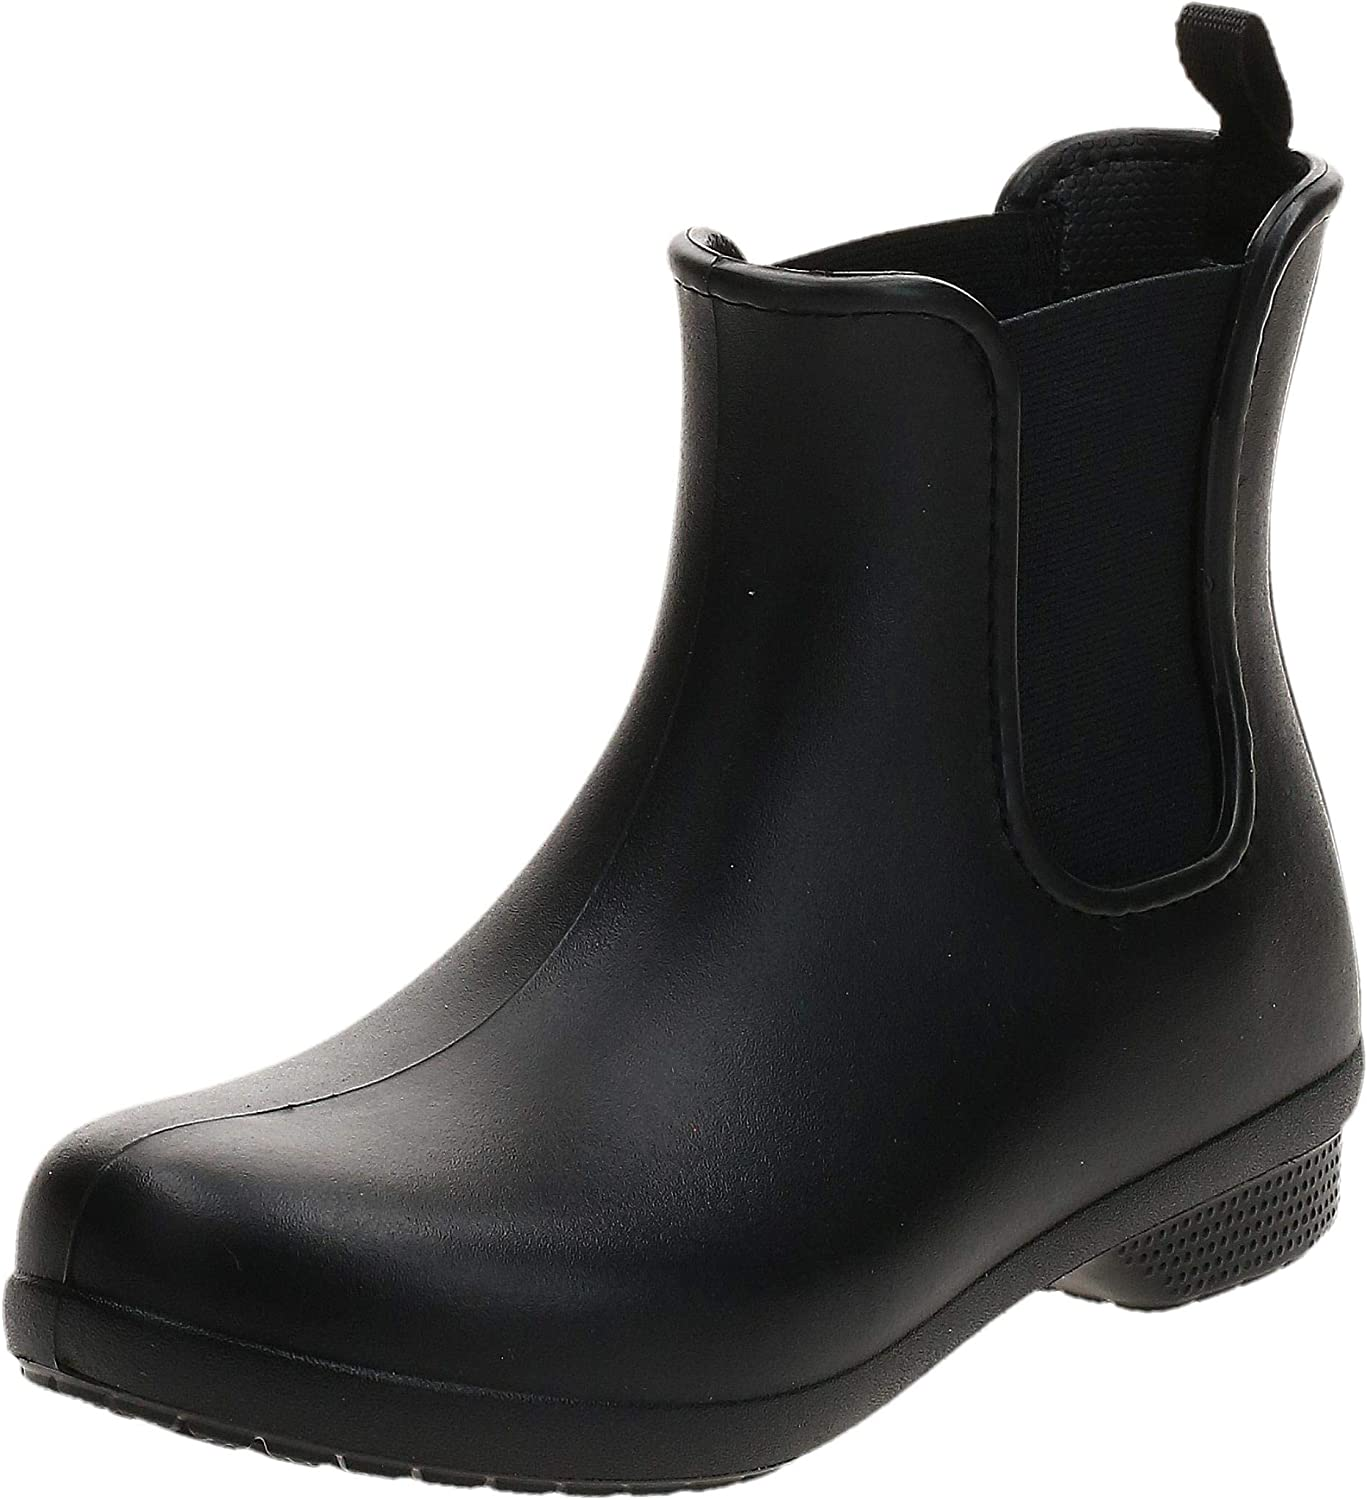 Crocs Womens Freesail Pull On Fashionable Chelsea Boots